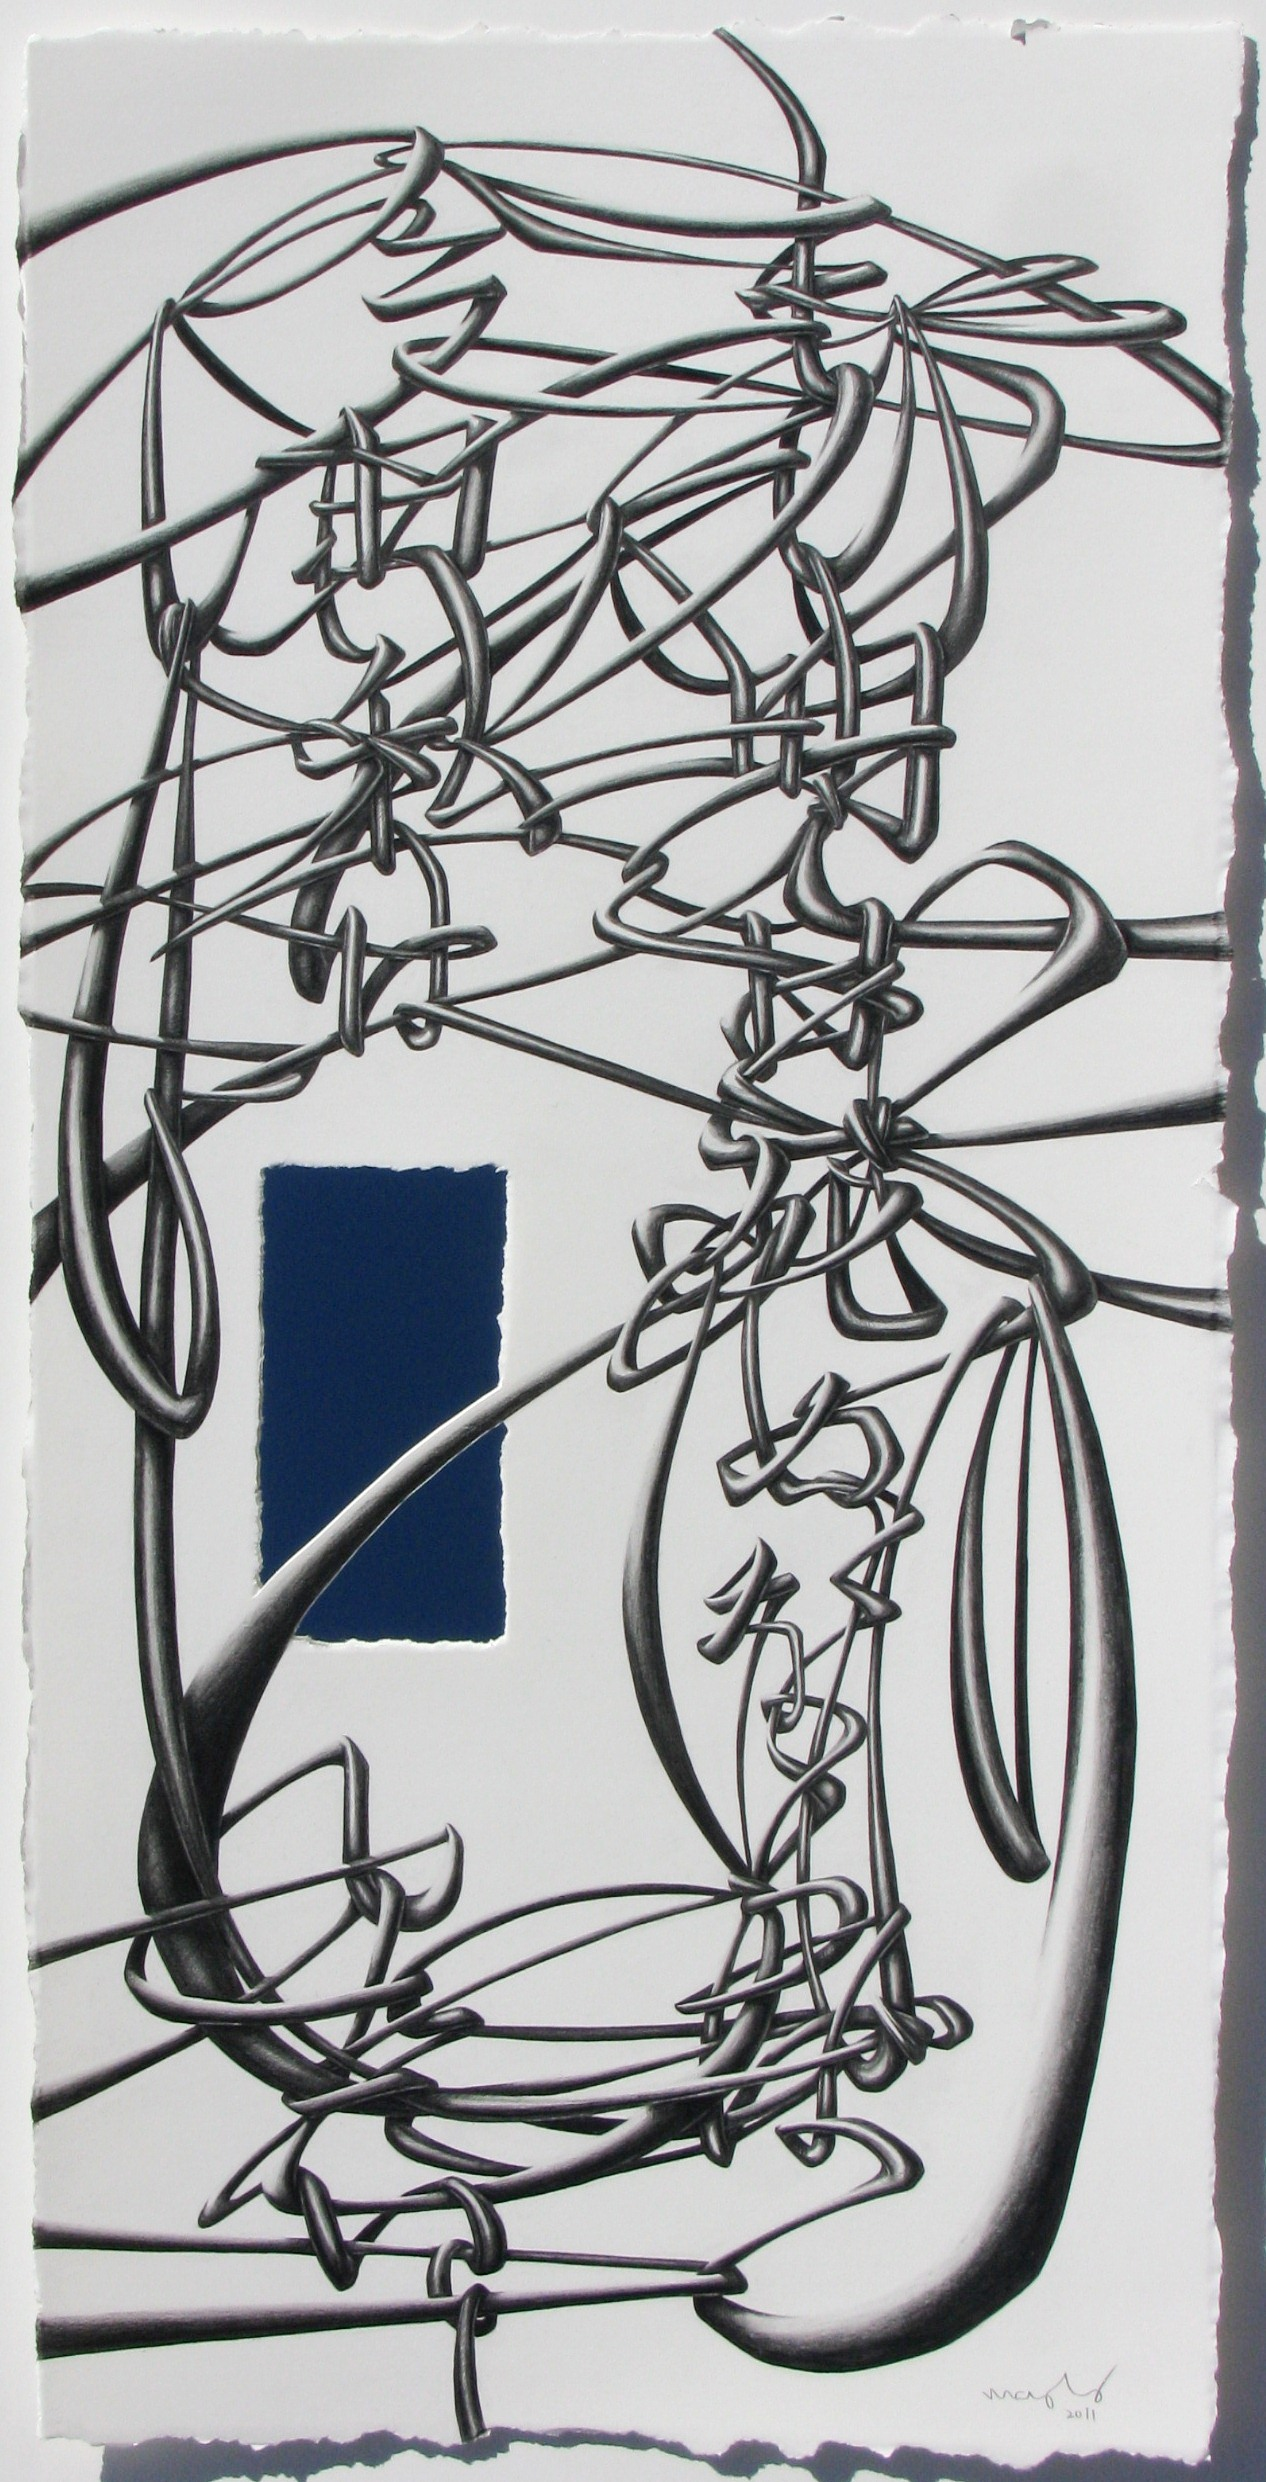 """If I Am Going To Die Tomorrow, Today I Want To ______., 2011, graphite on paper, glass mirror, 21 x 10 1/4"""""""